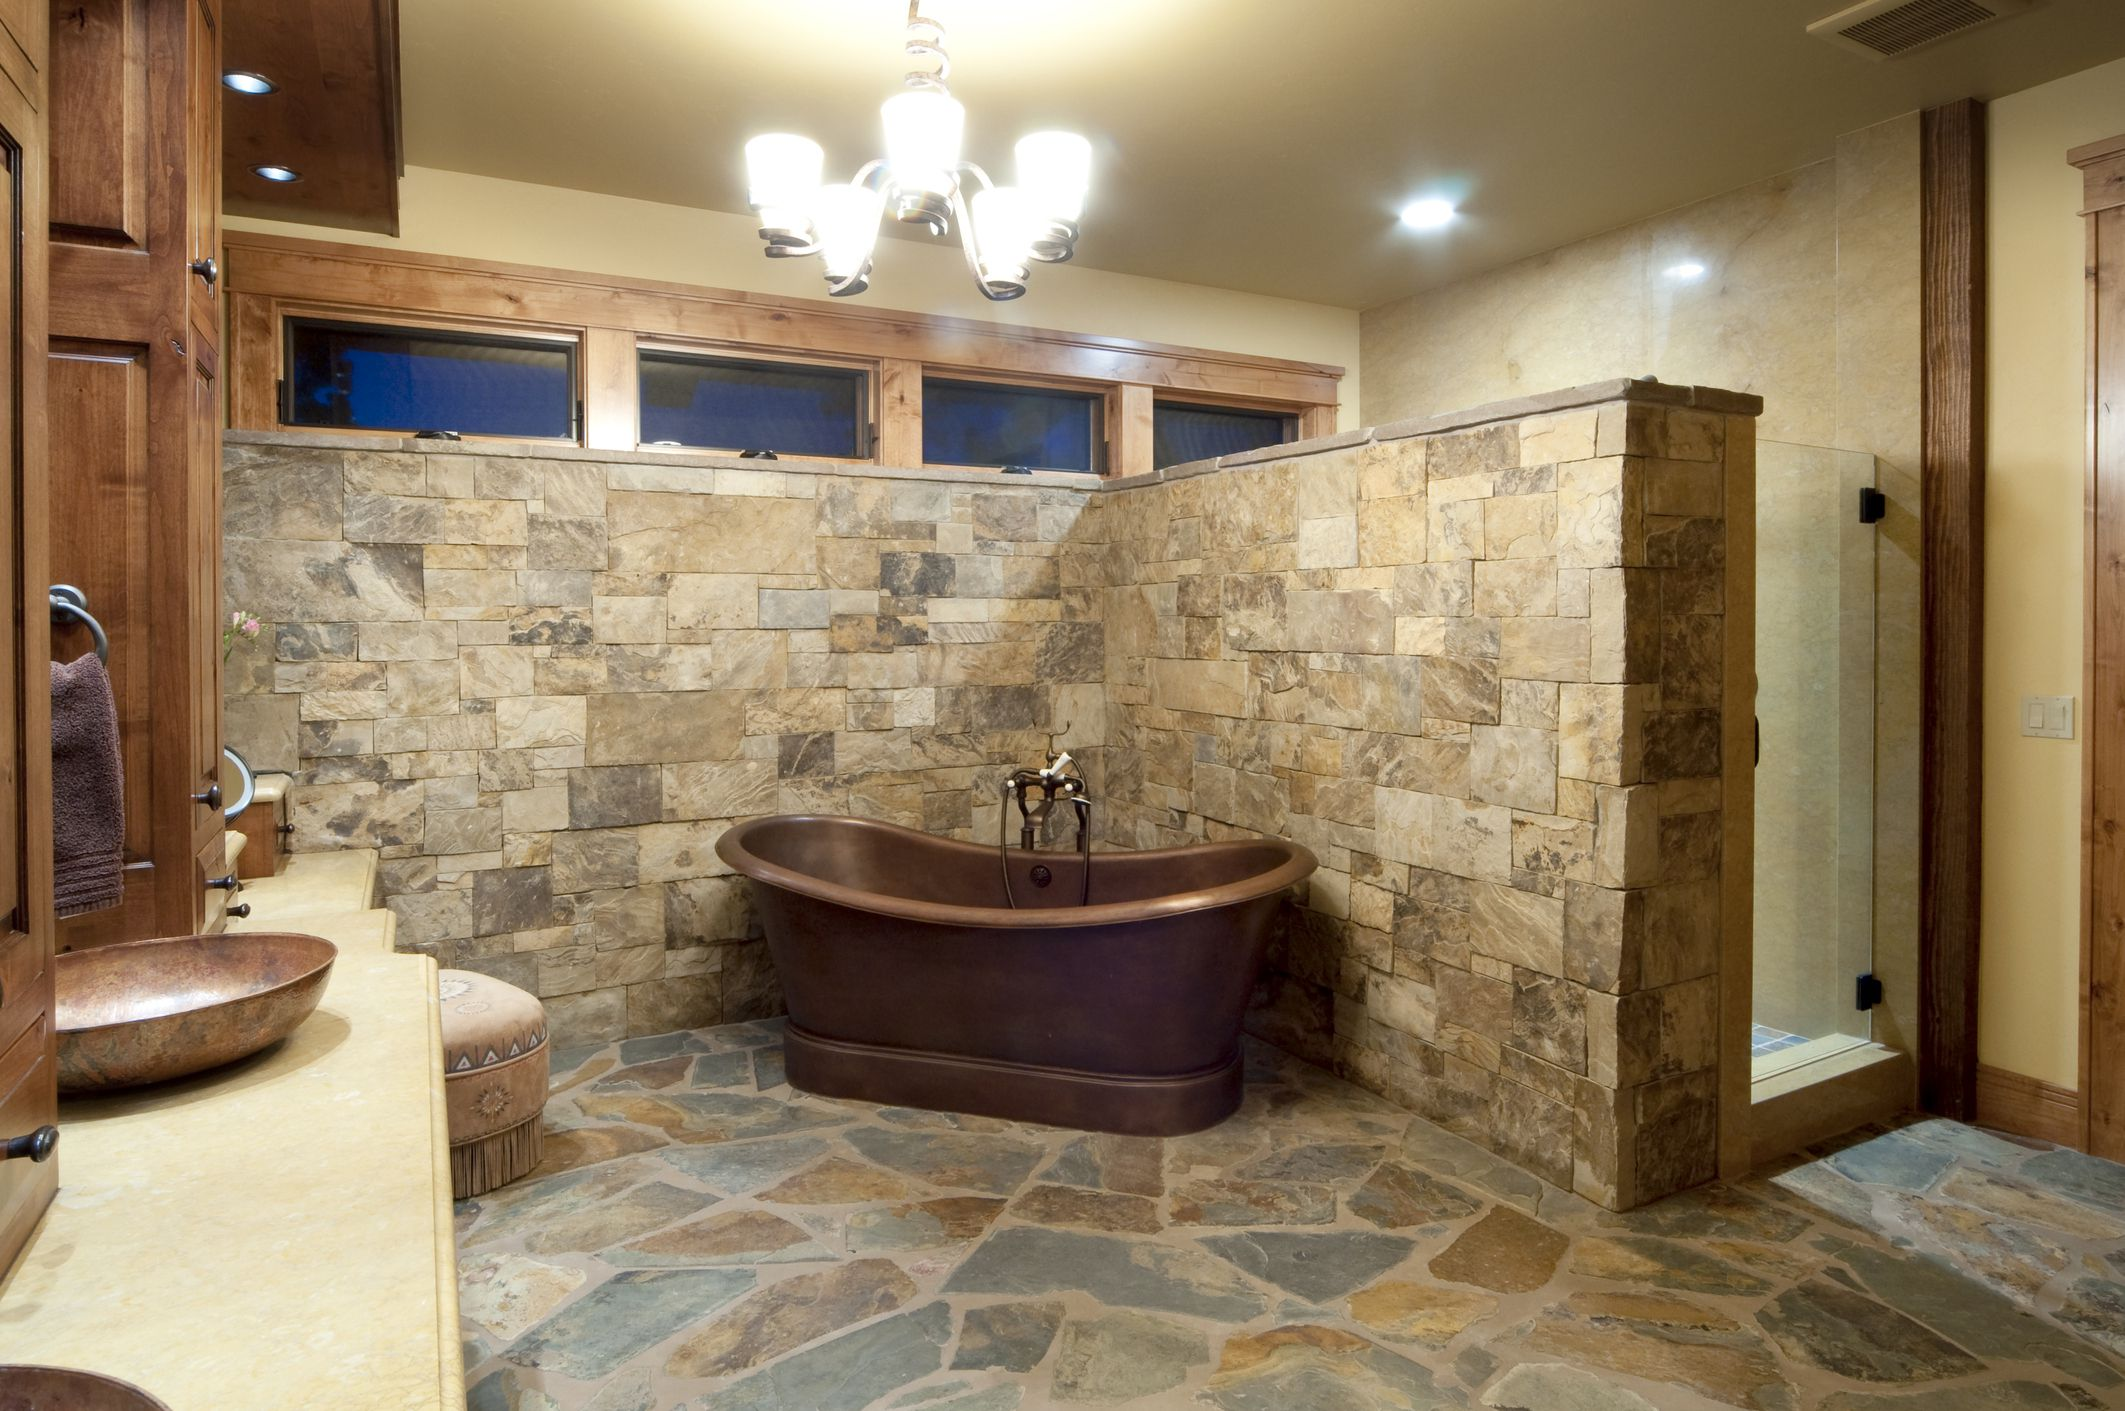 bathroom flooring. Brick Bathroom Flooring  What to Know About Safety Design and More Some Great Budget Friendly Floor Ideas